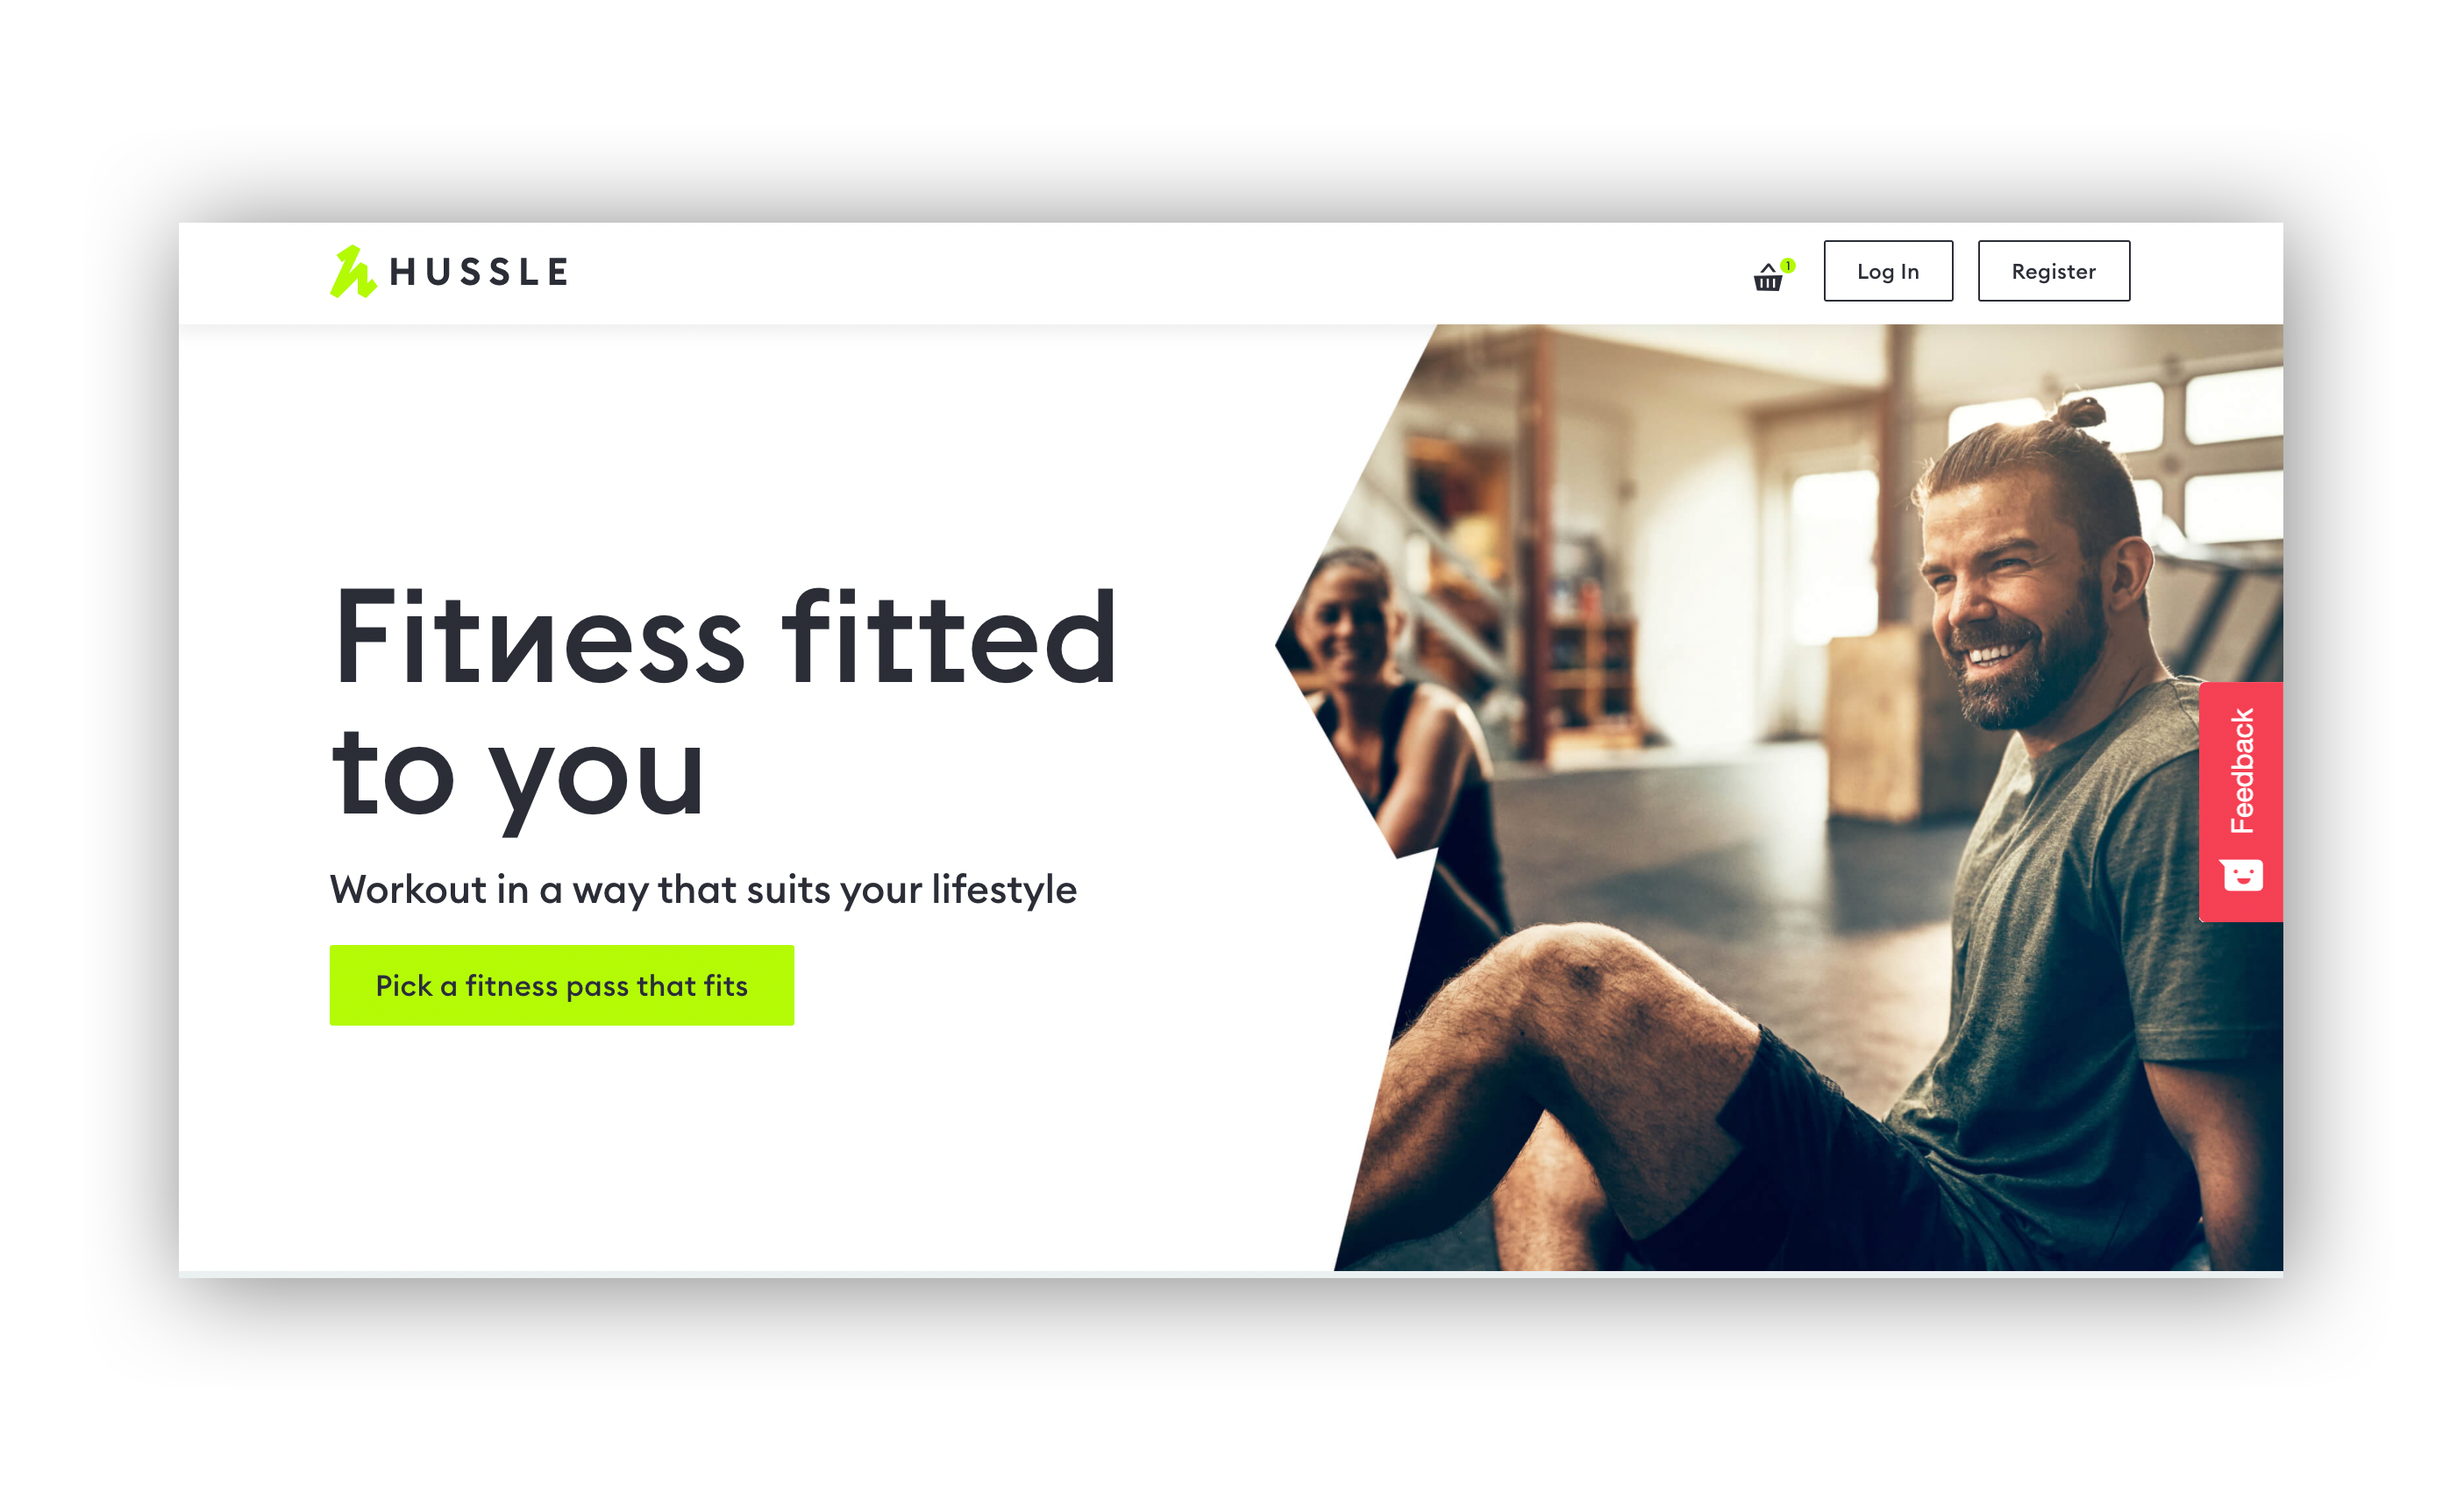 THE LANDING PAGE PROMOTING HUSSLE'S NEW PERSONALISED PASS BUILDER